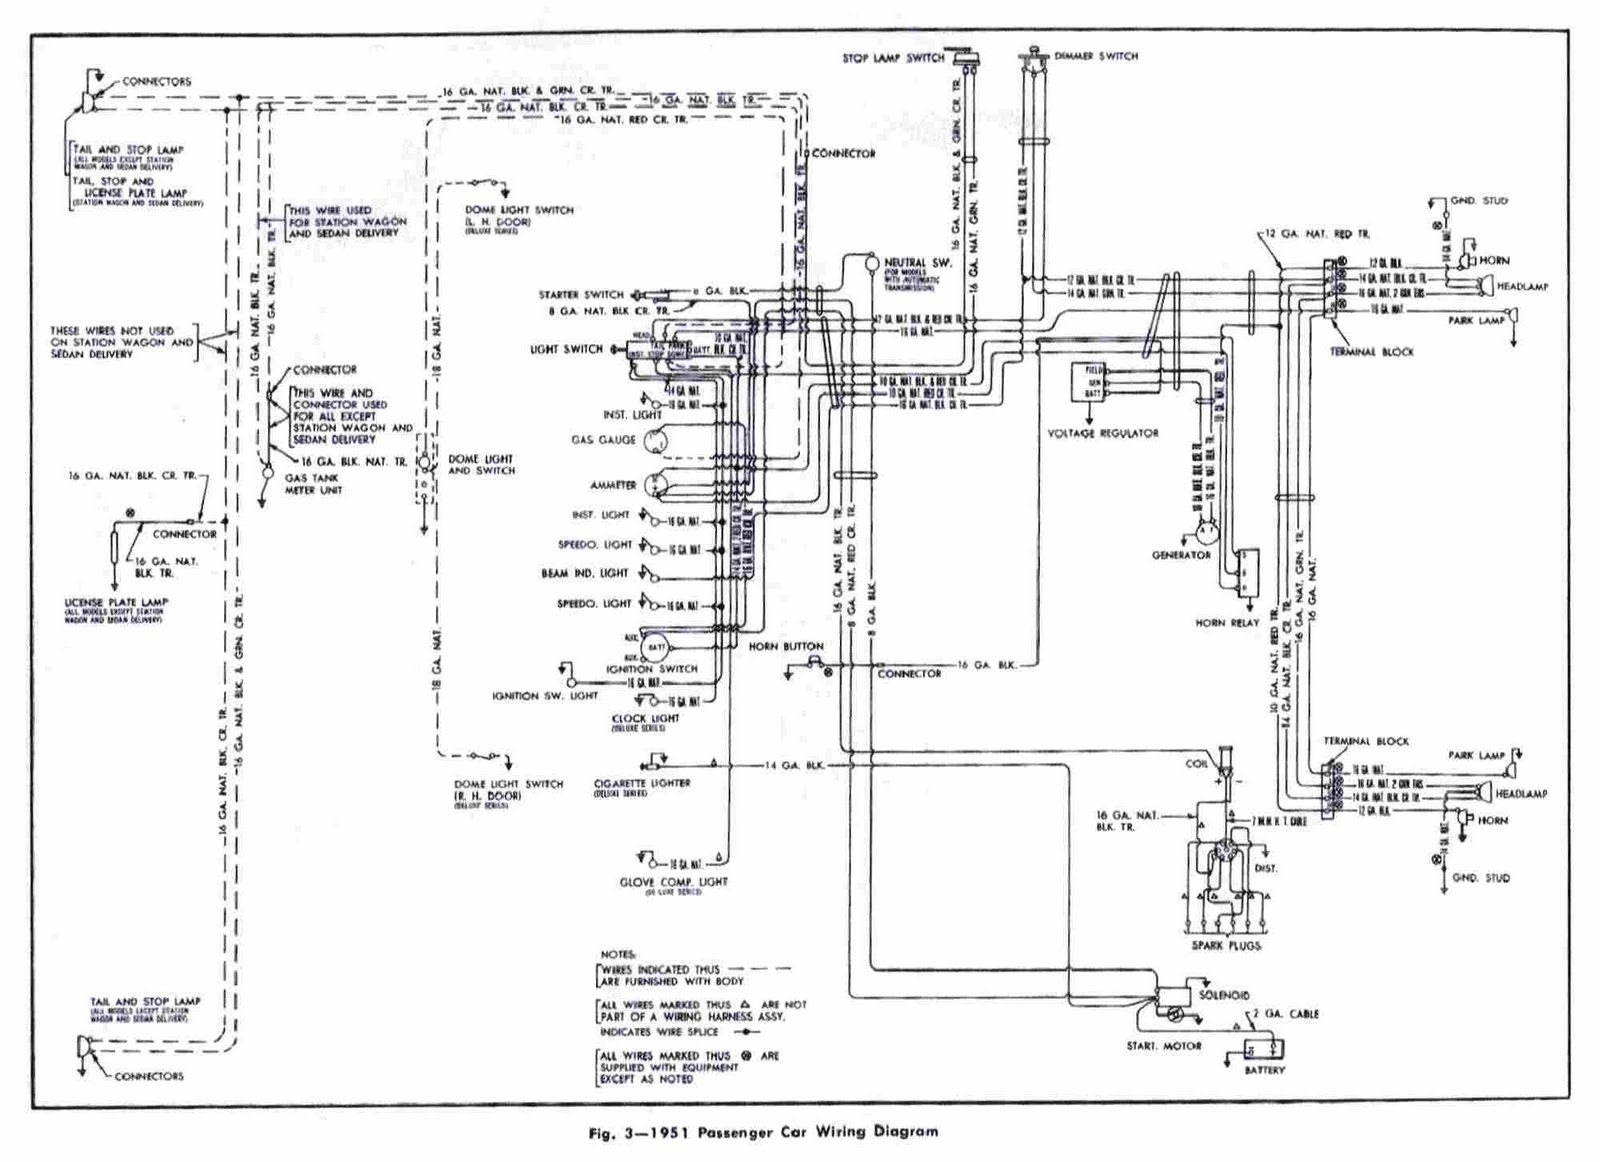 1949 chrysler wiring diagram